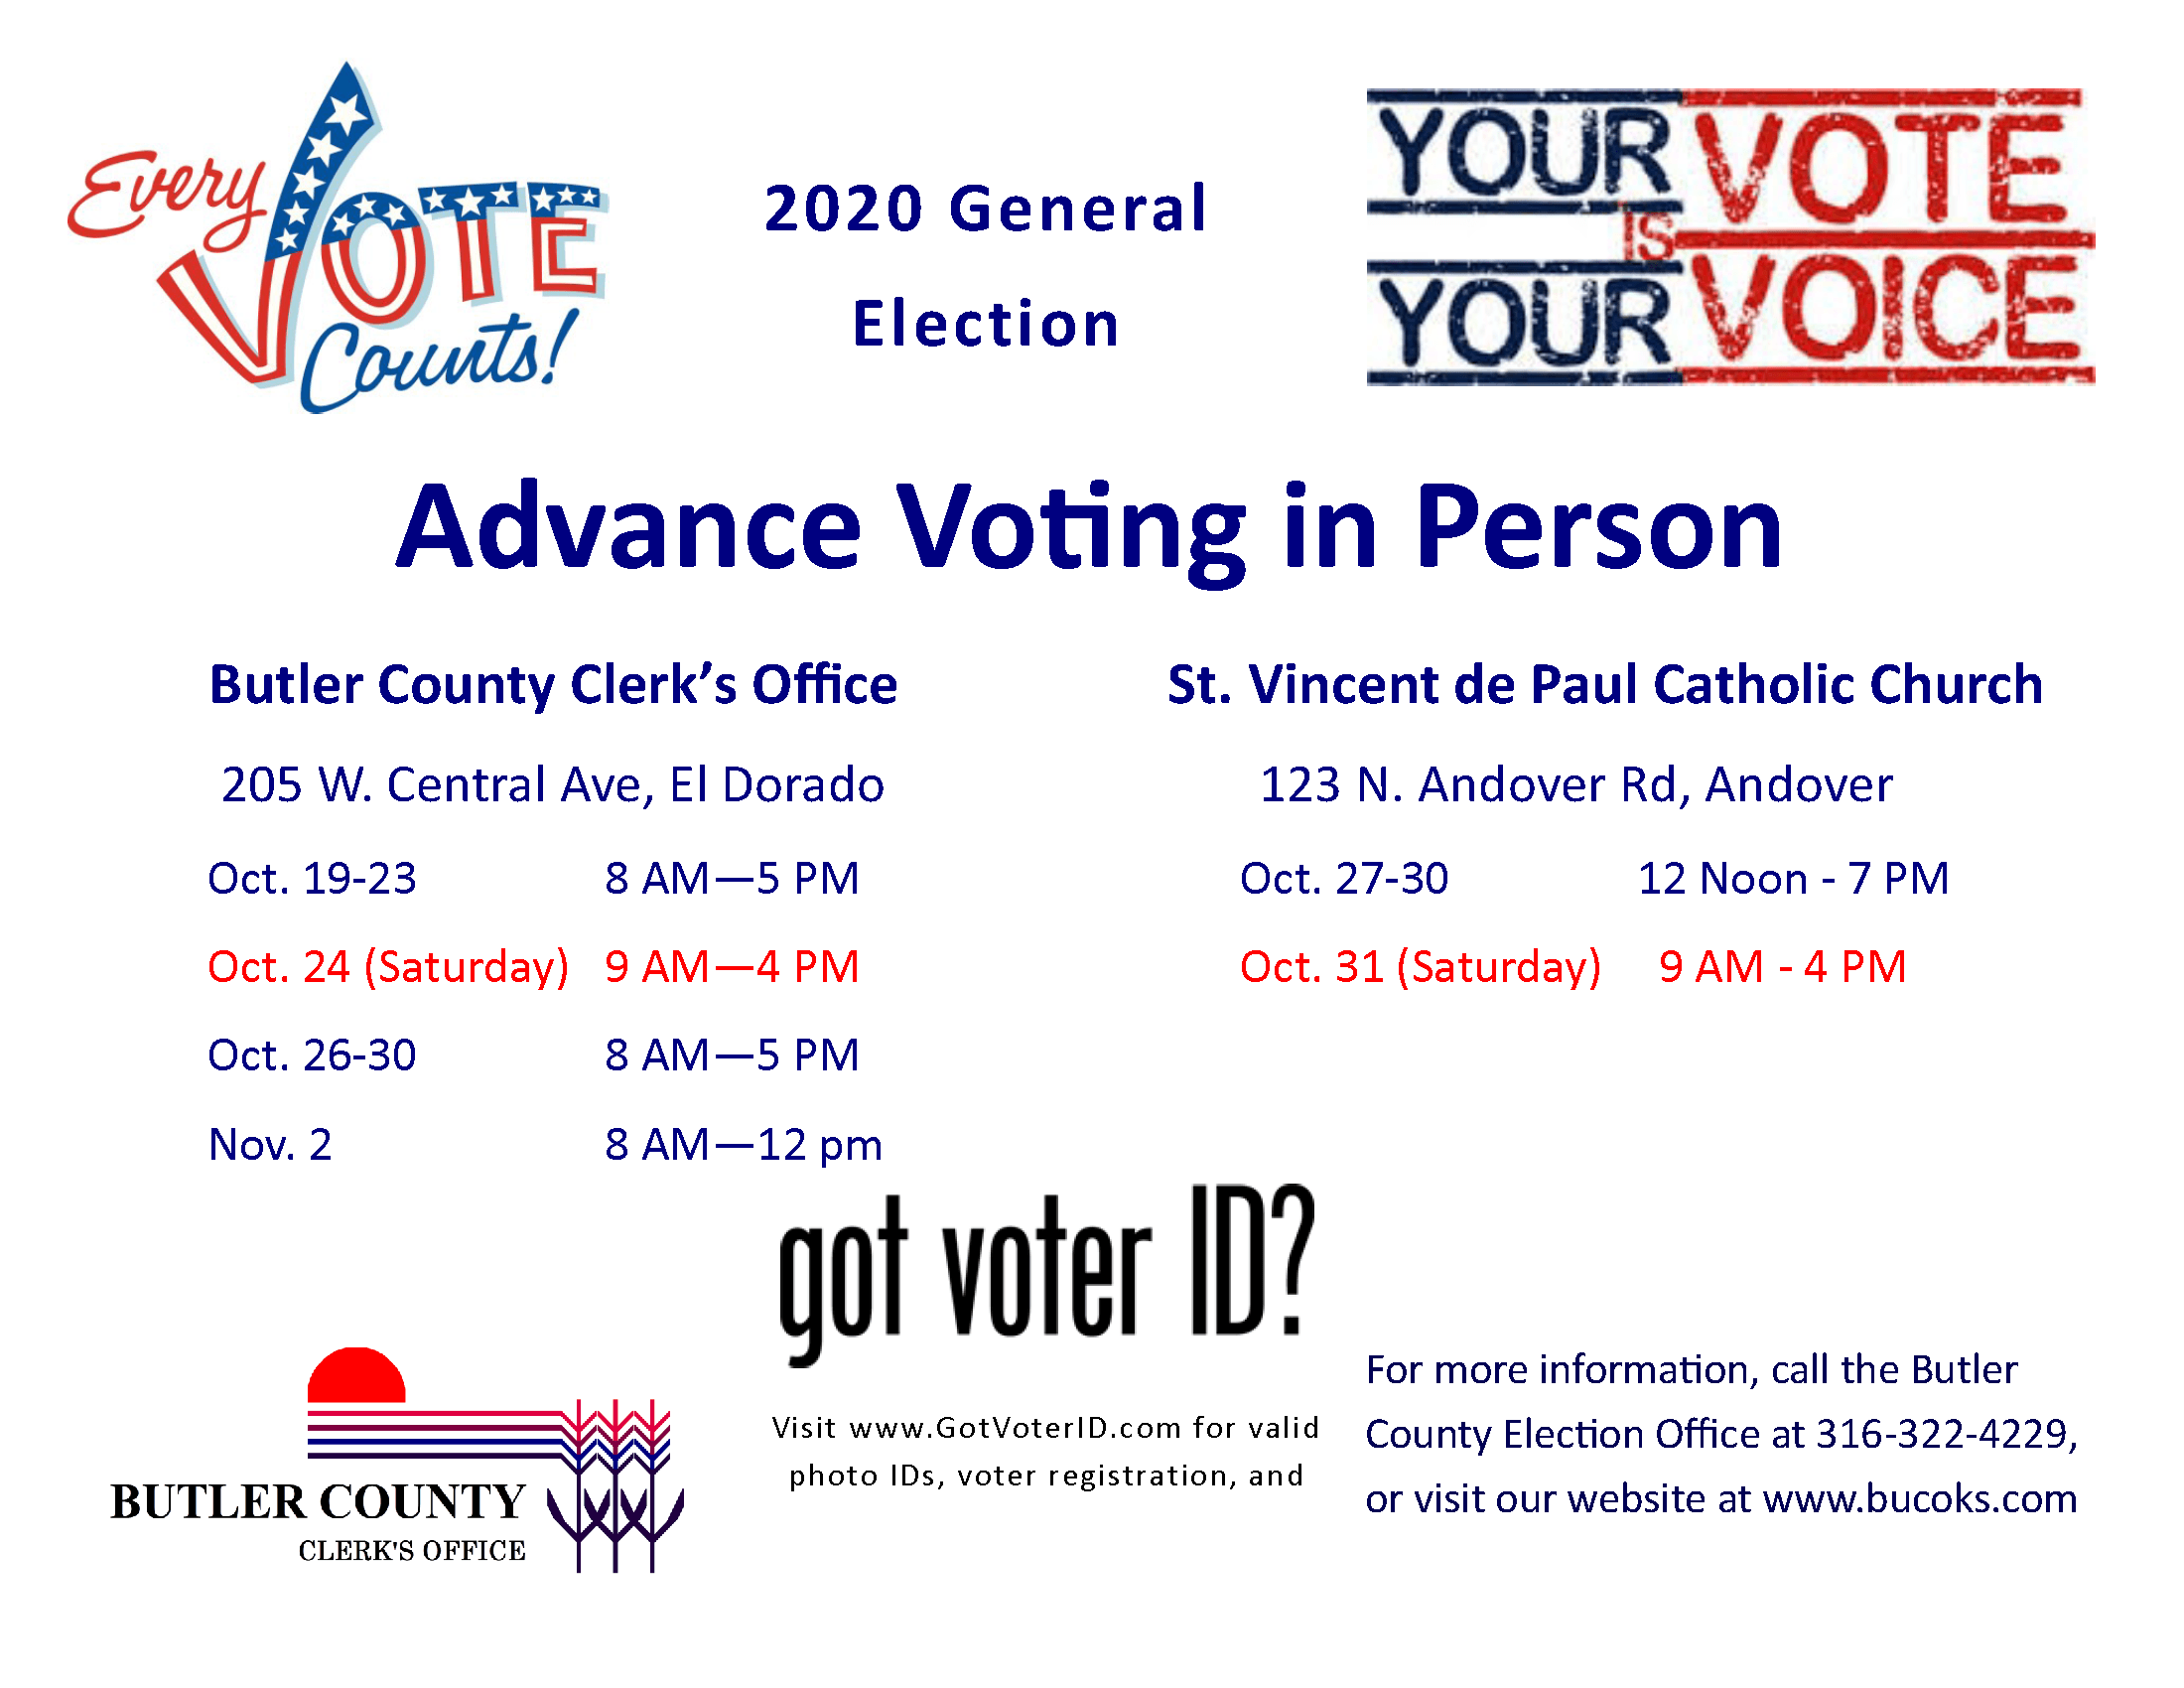 Advance Voting General Election Dates and Times